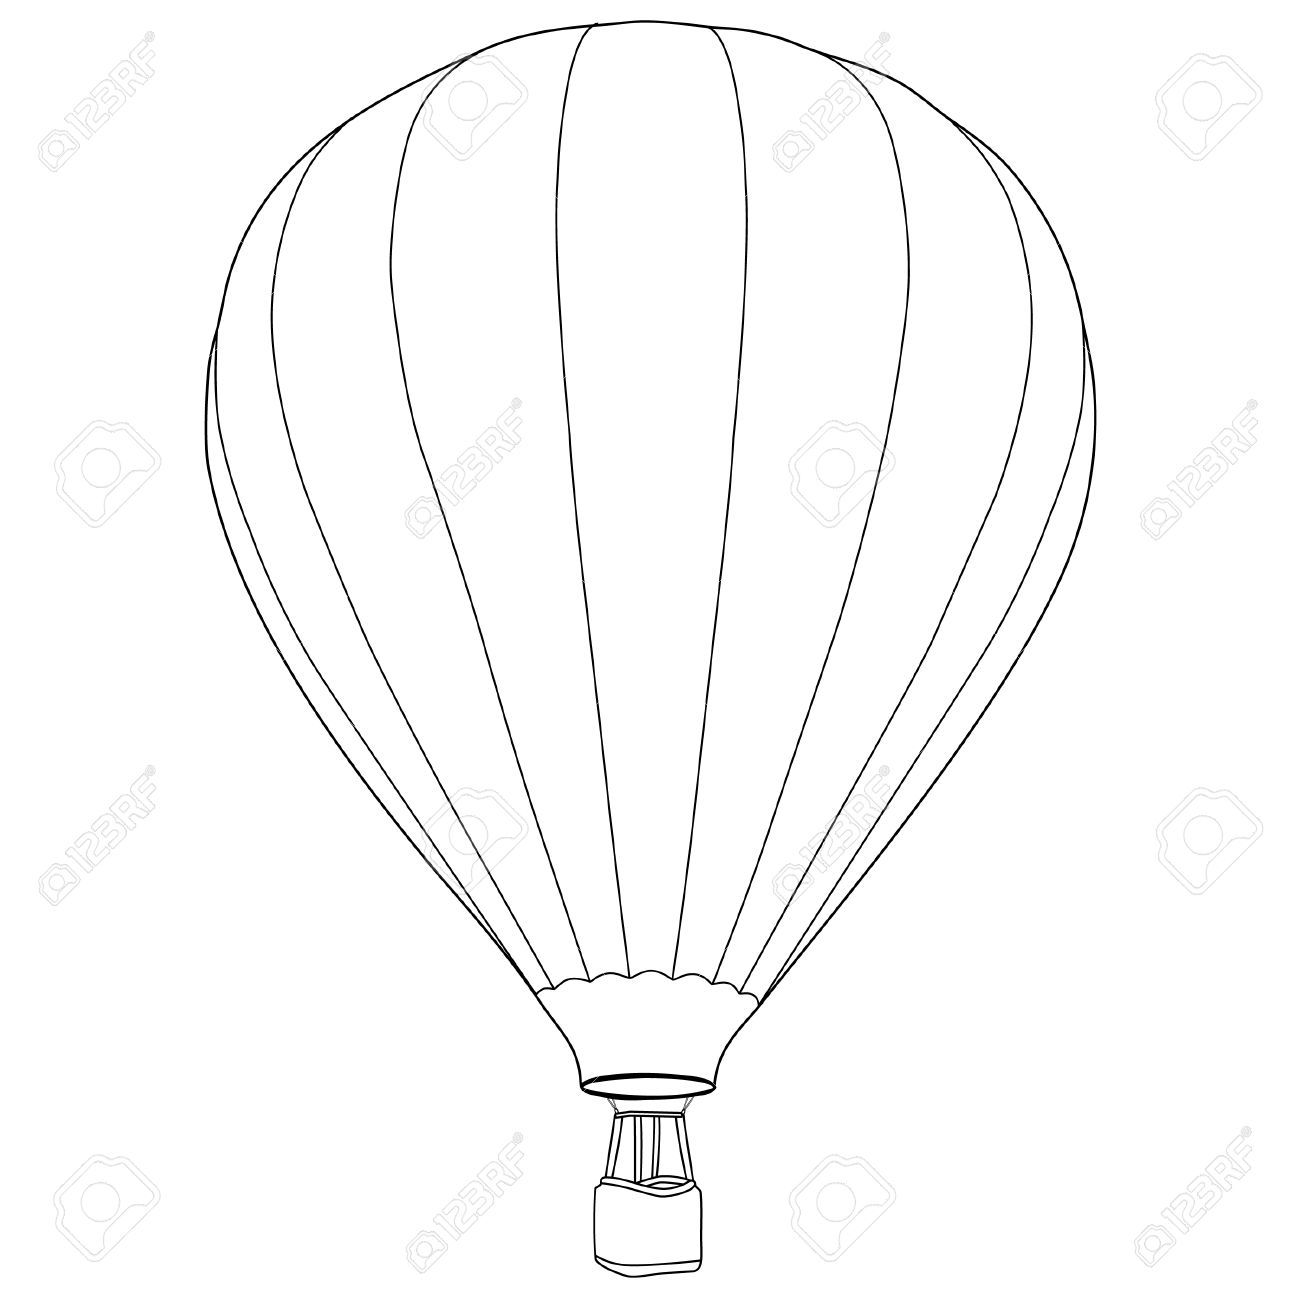 Vintage Hot Air Balloon With Basket Vector Icon Isolated, Summer ...